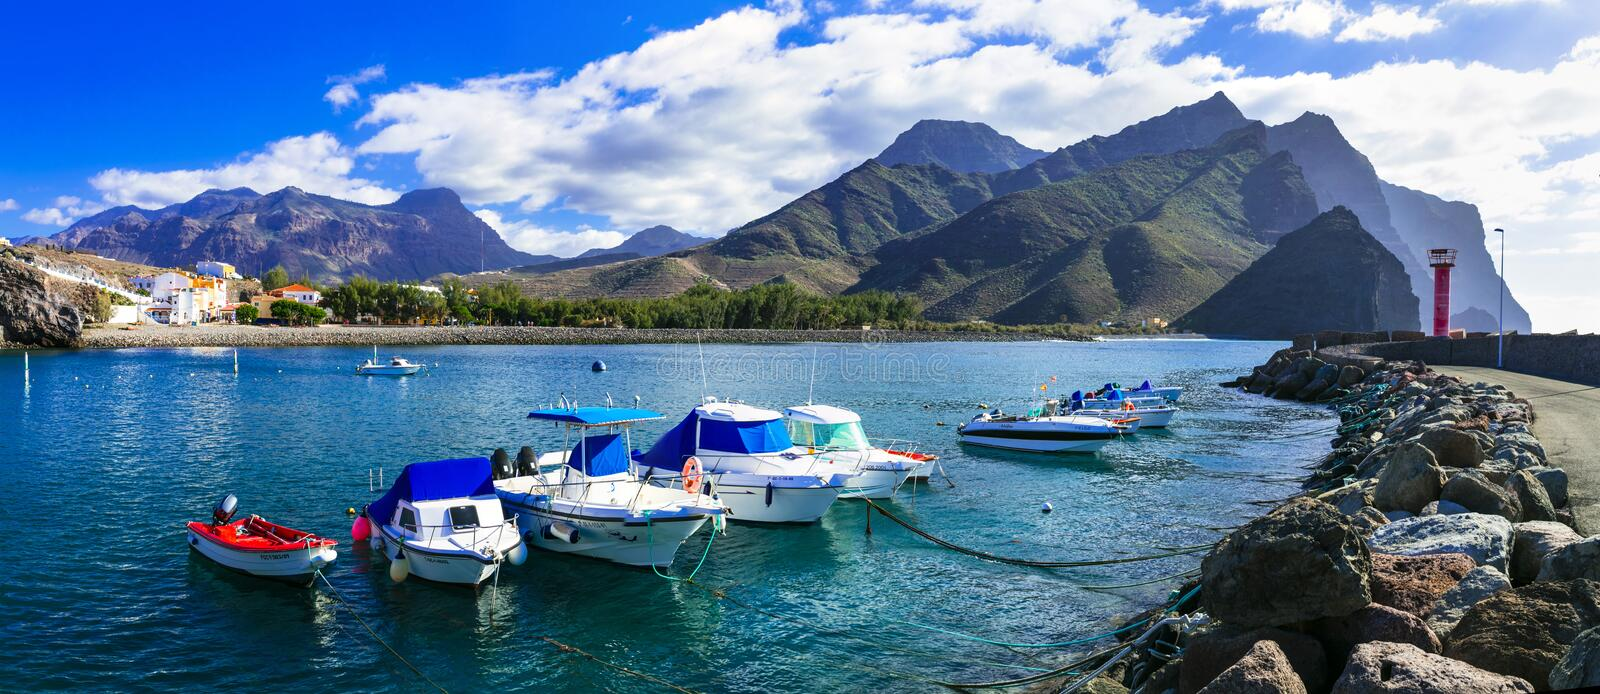 Gran Canaria island- picturesque traditional fishing village La Aldea de San Nicolas de Tolentino. Turquoise sea,traditional fishing boats and mountains,La aldea stock photos